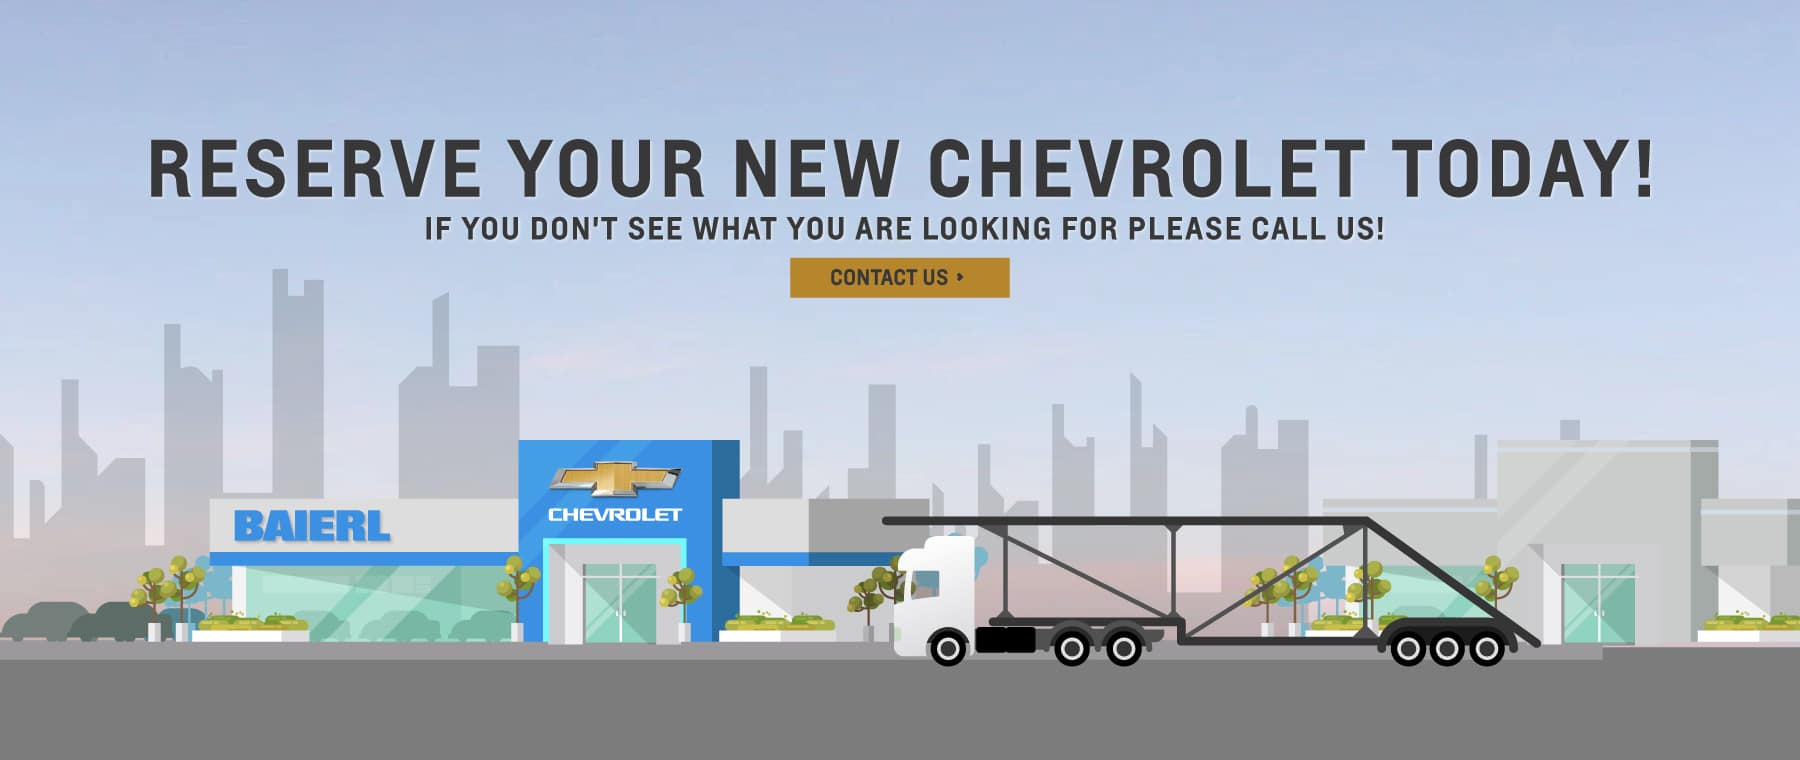 Reserve you new Chevy Today